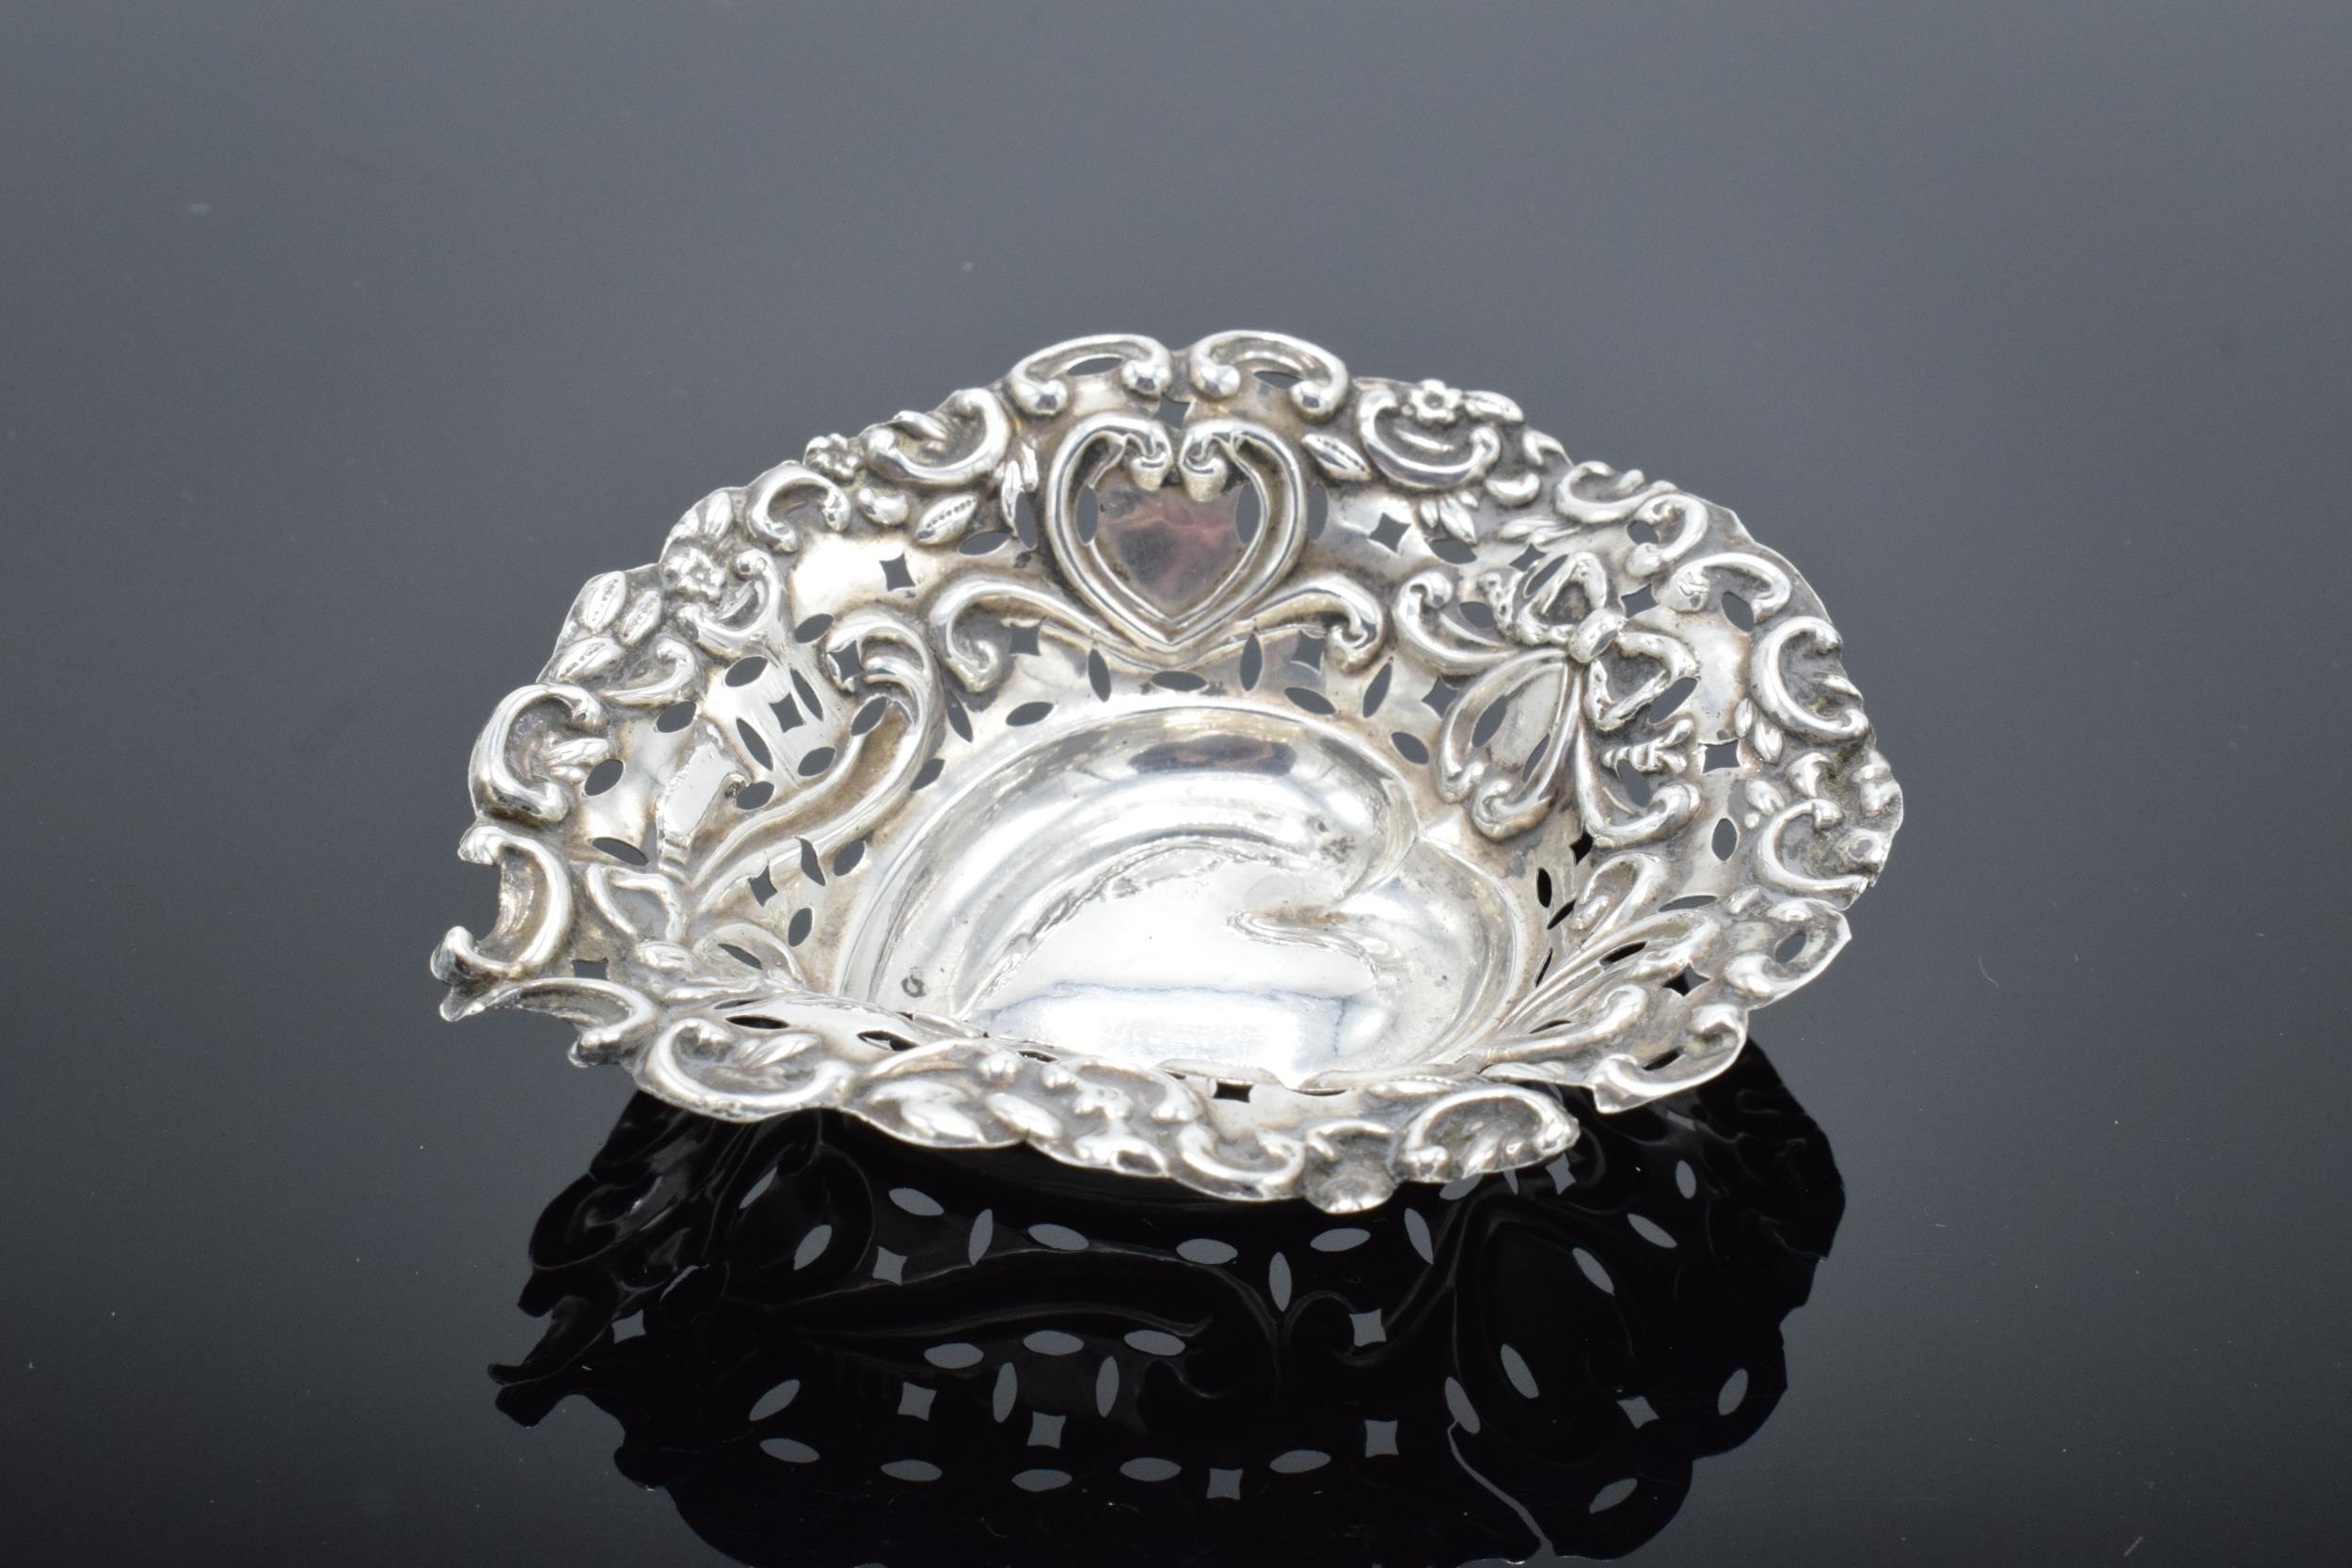 An ornate silver sweet dish/ small tray Birmingham 1900. 9cm by 7cm. 11.9 grams. - Image 4 of 6